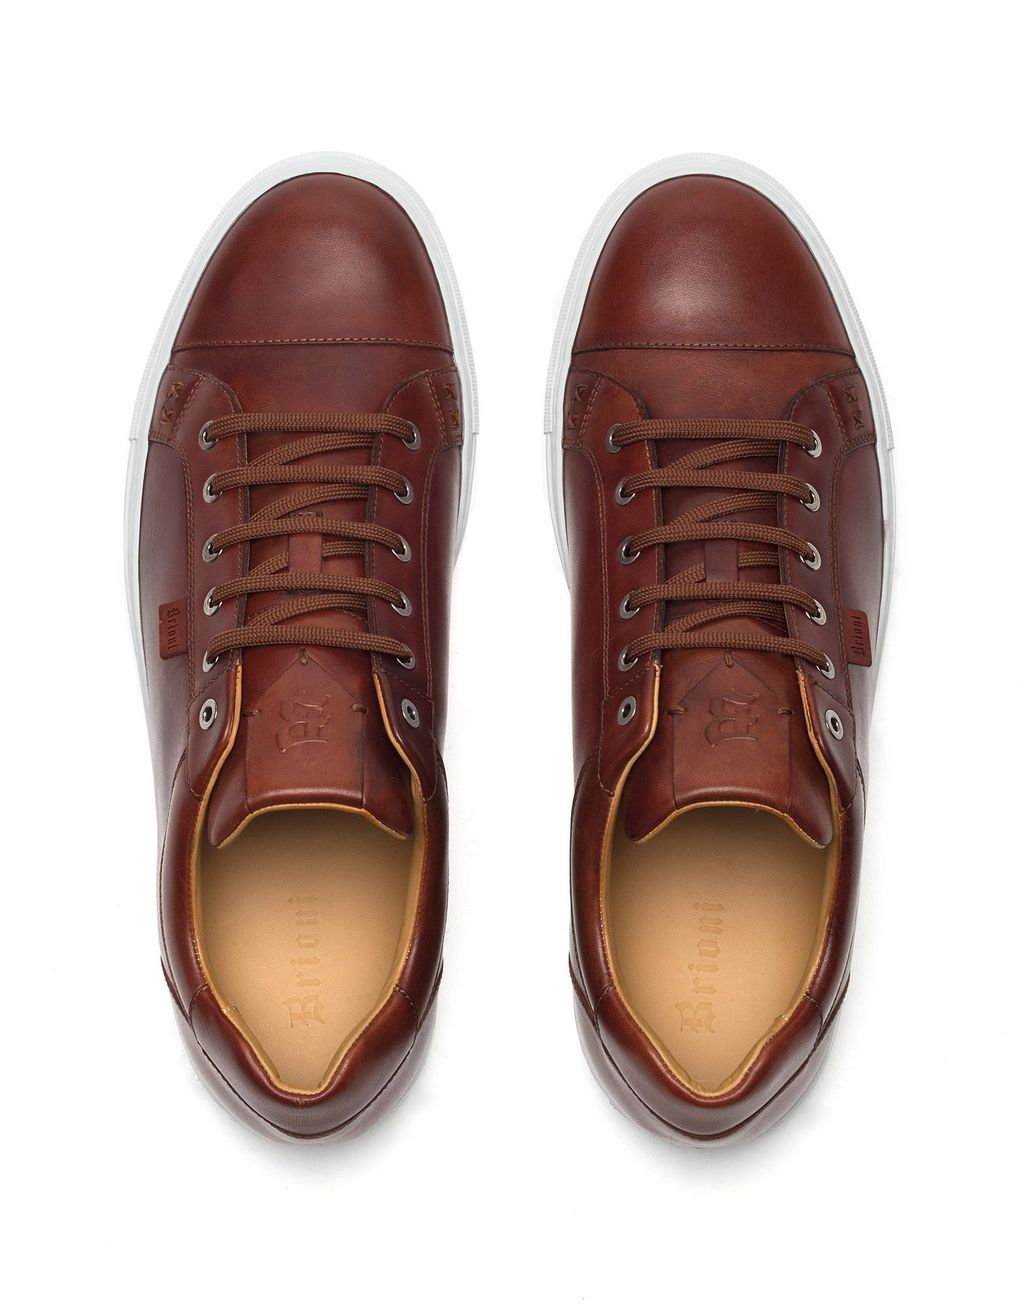 BRIONI Sneakers in Pelle di Vitello Color Tabacco Sneaker U r